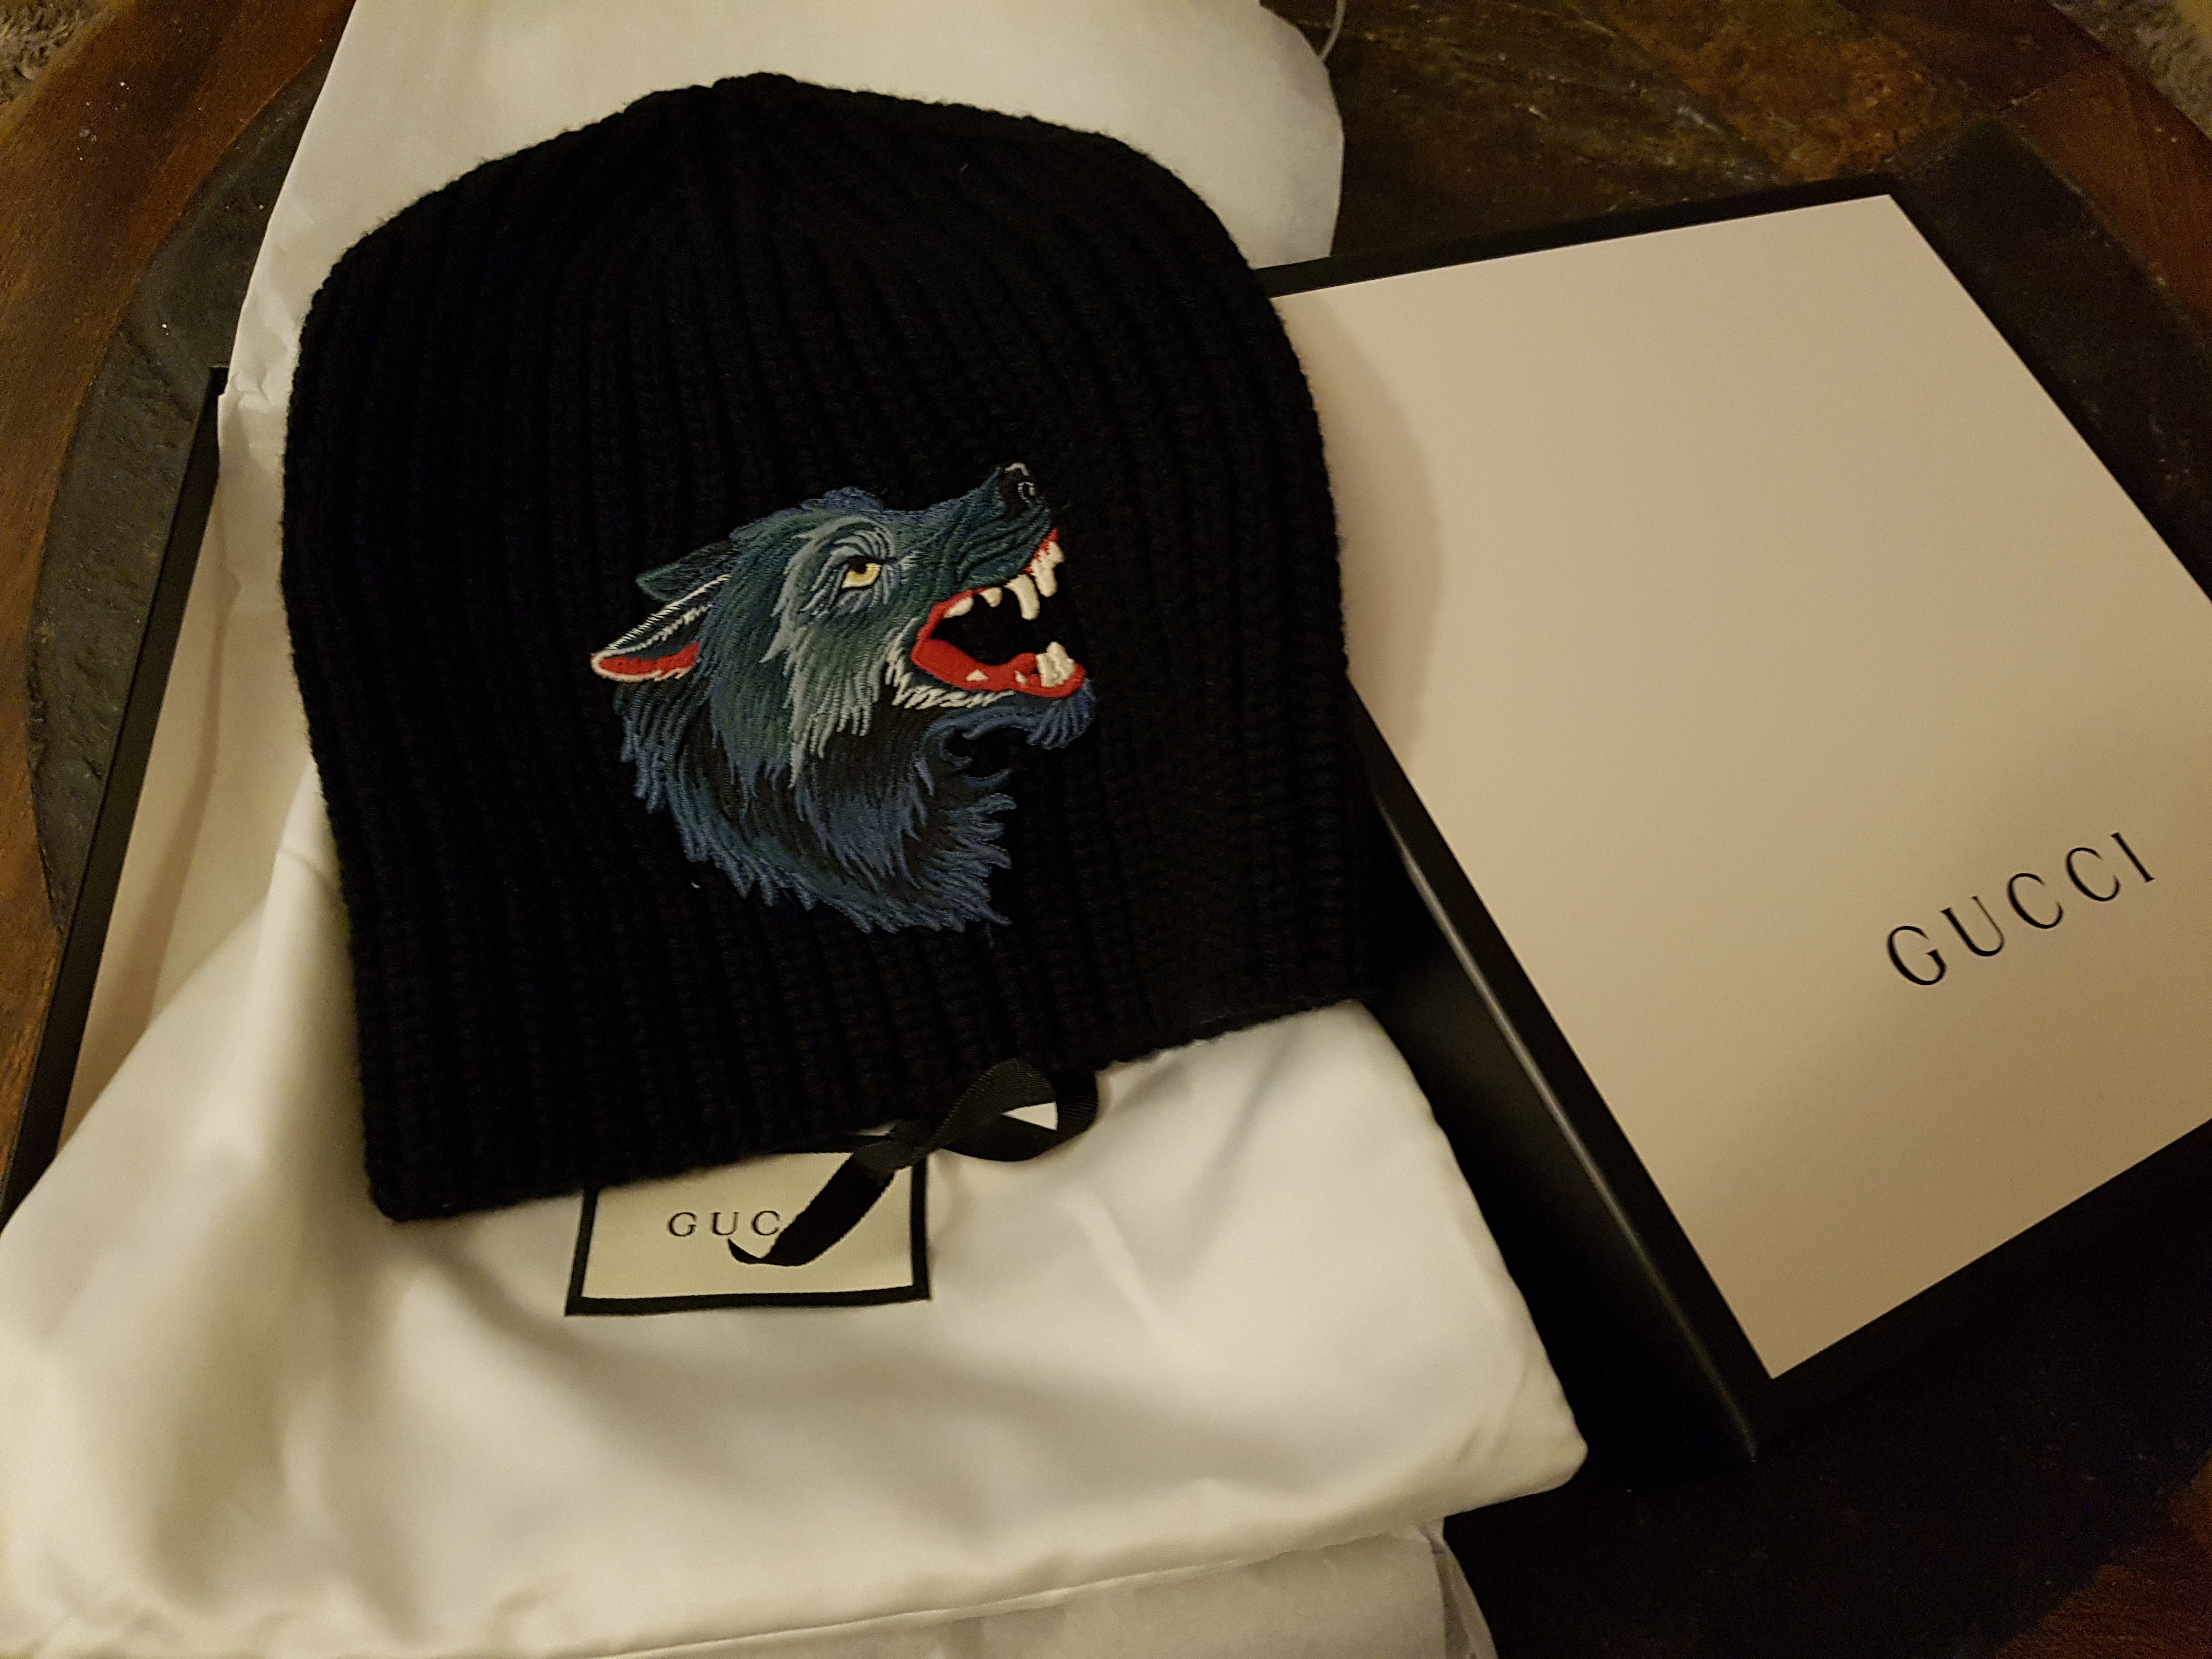 46805771 Gucci ×. Gucci Wolf beanie. Size: ONE SIZE